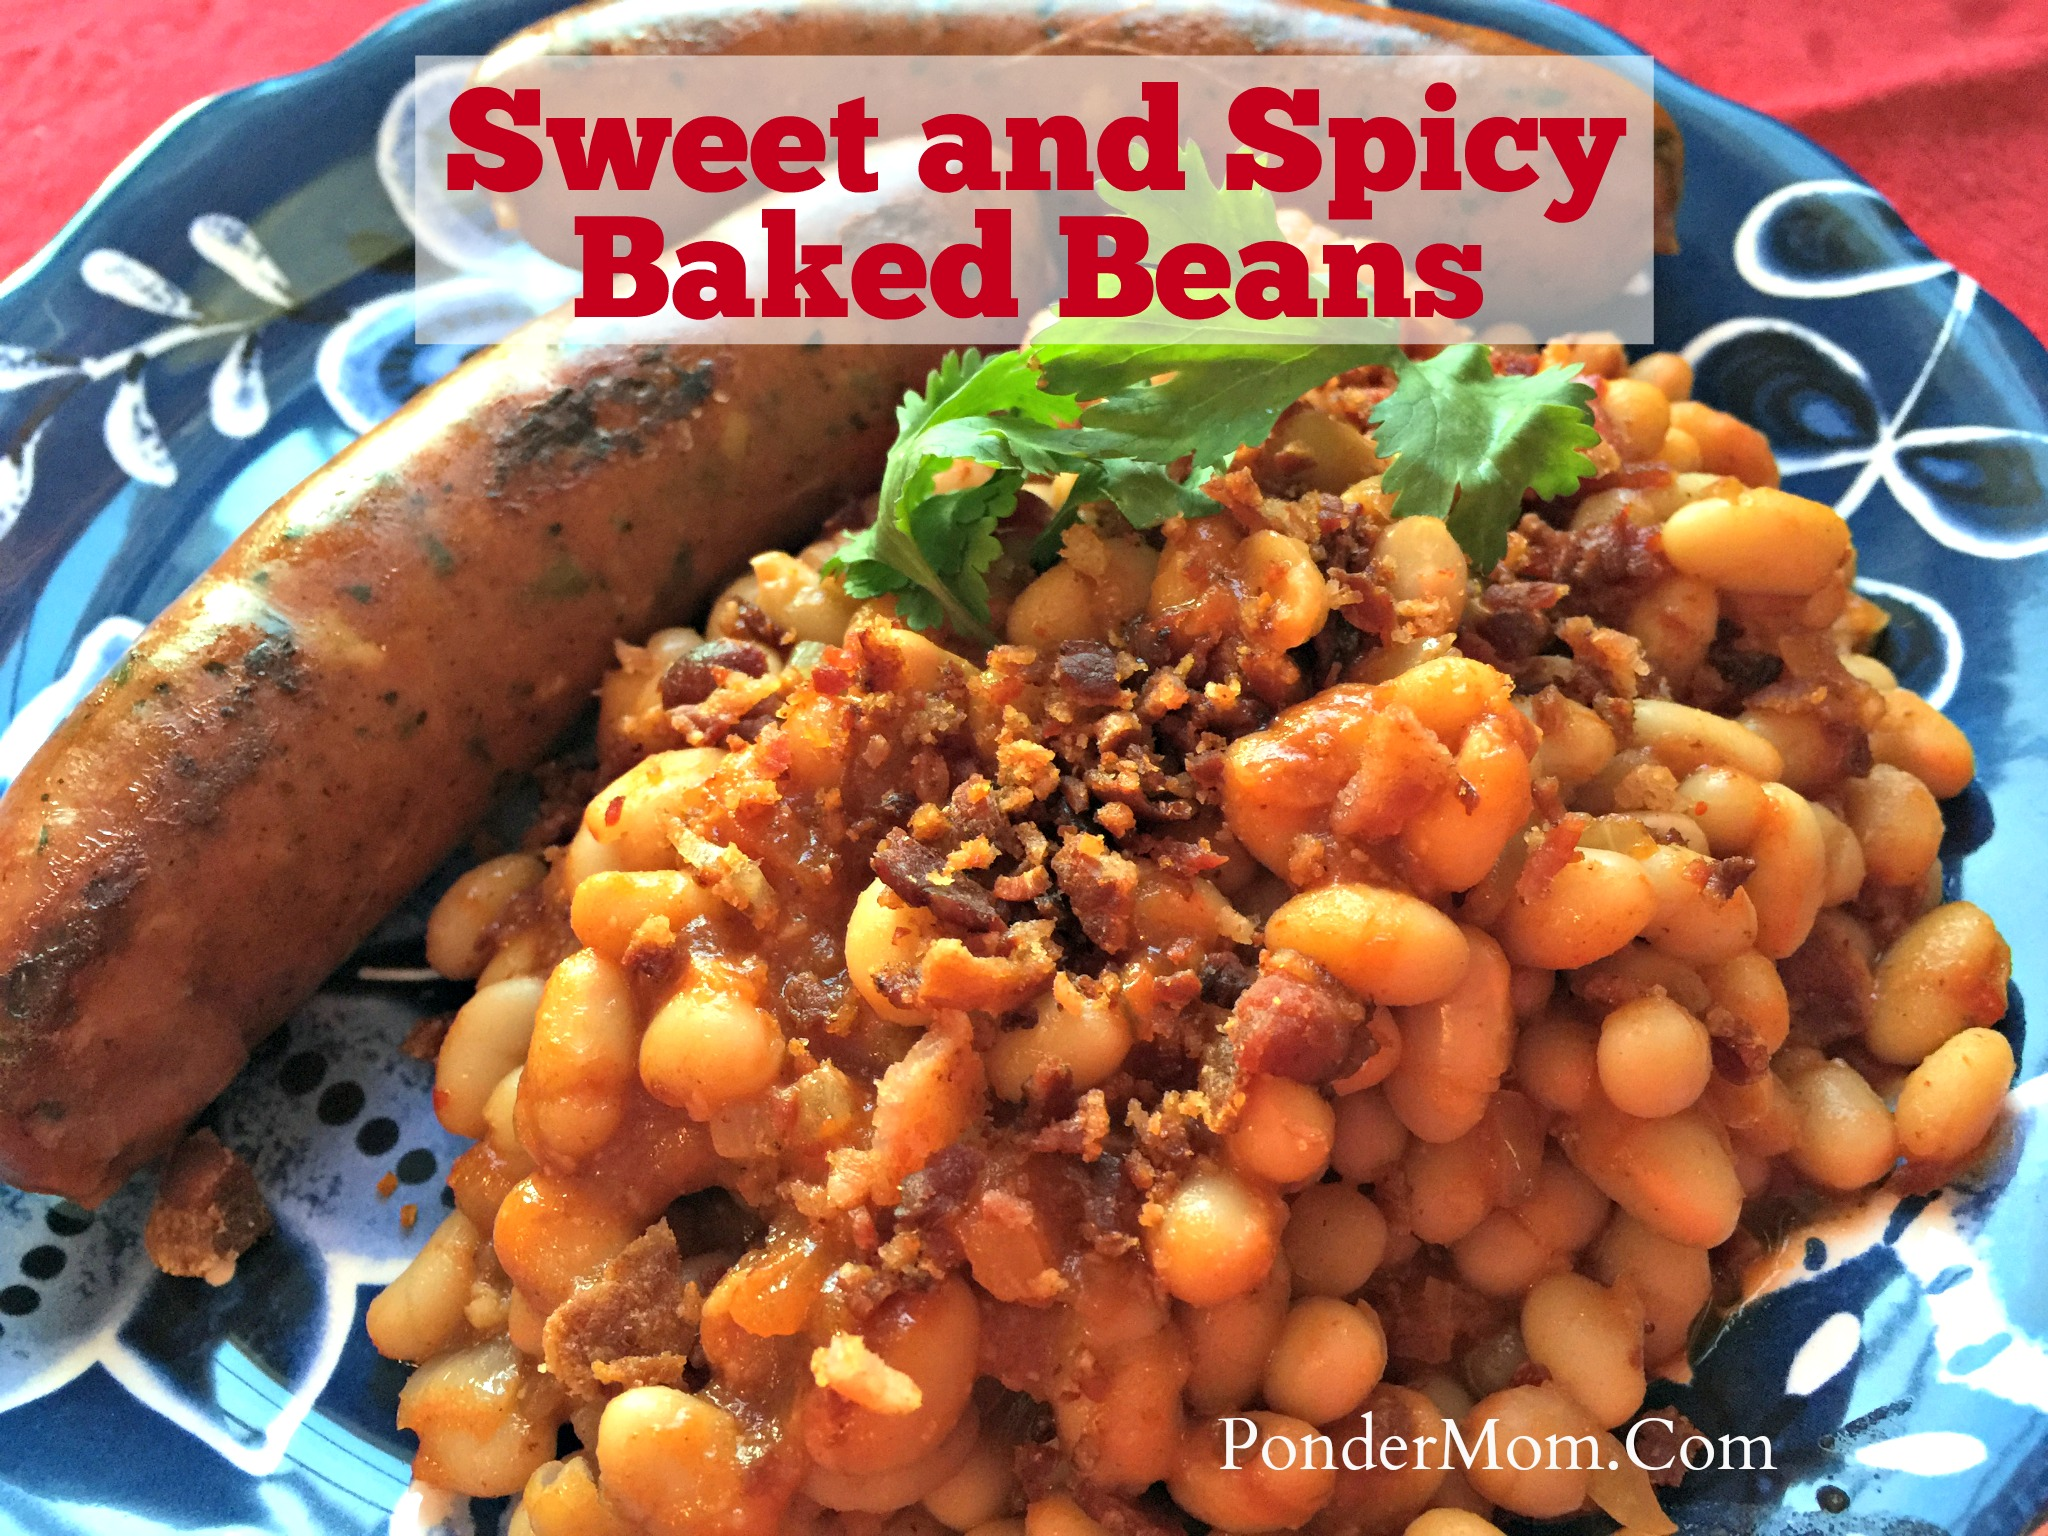 Healthy Meal #2: Smoky Chipotle Baked Beans with Bacon and Chicken Sausage